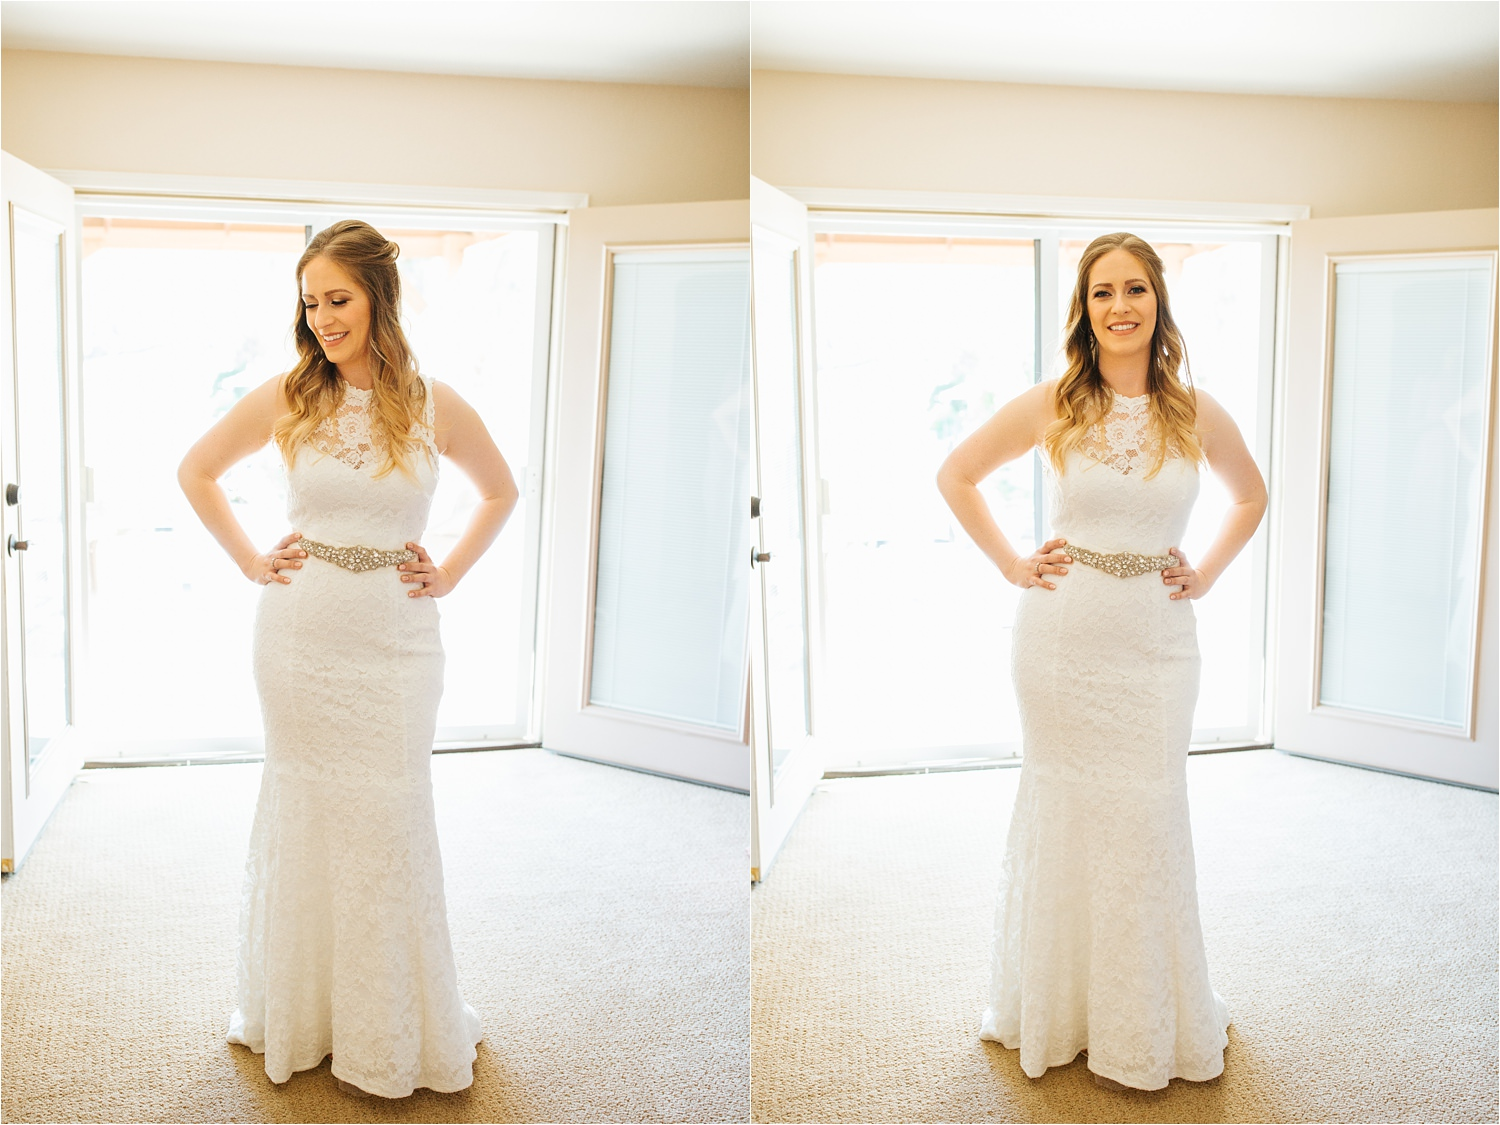 Bride about to walk down the aisle to marry her groom - https://brittneyhannonphotography.com